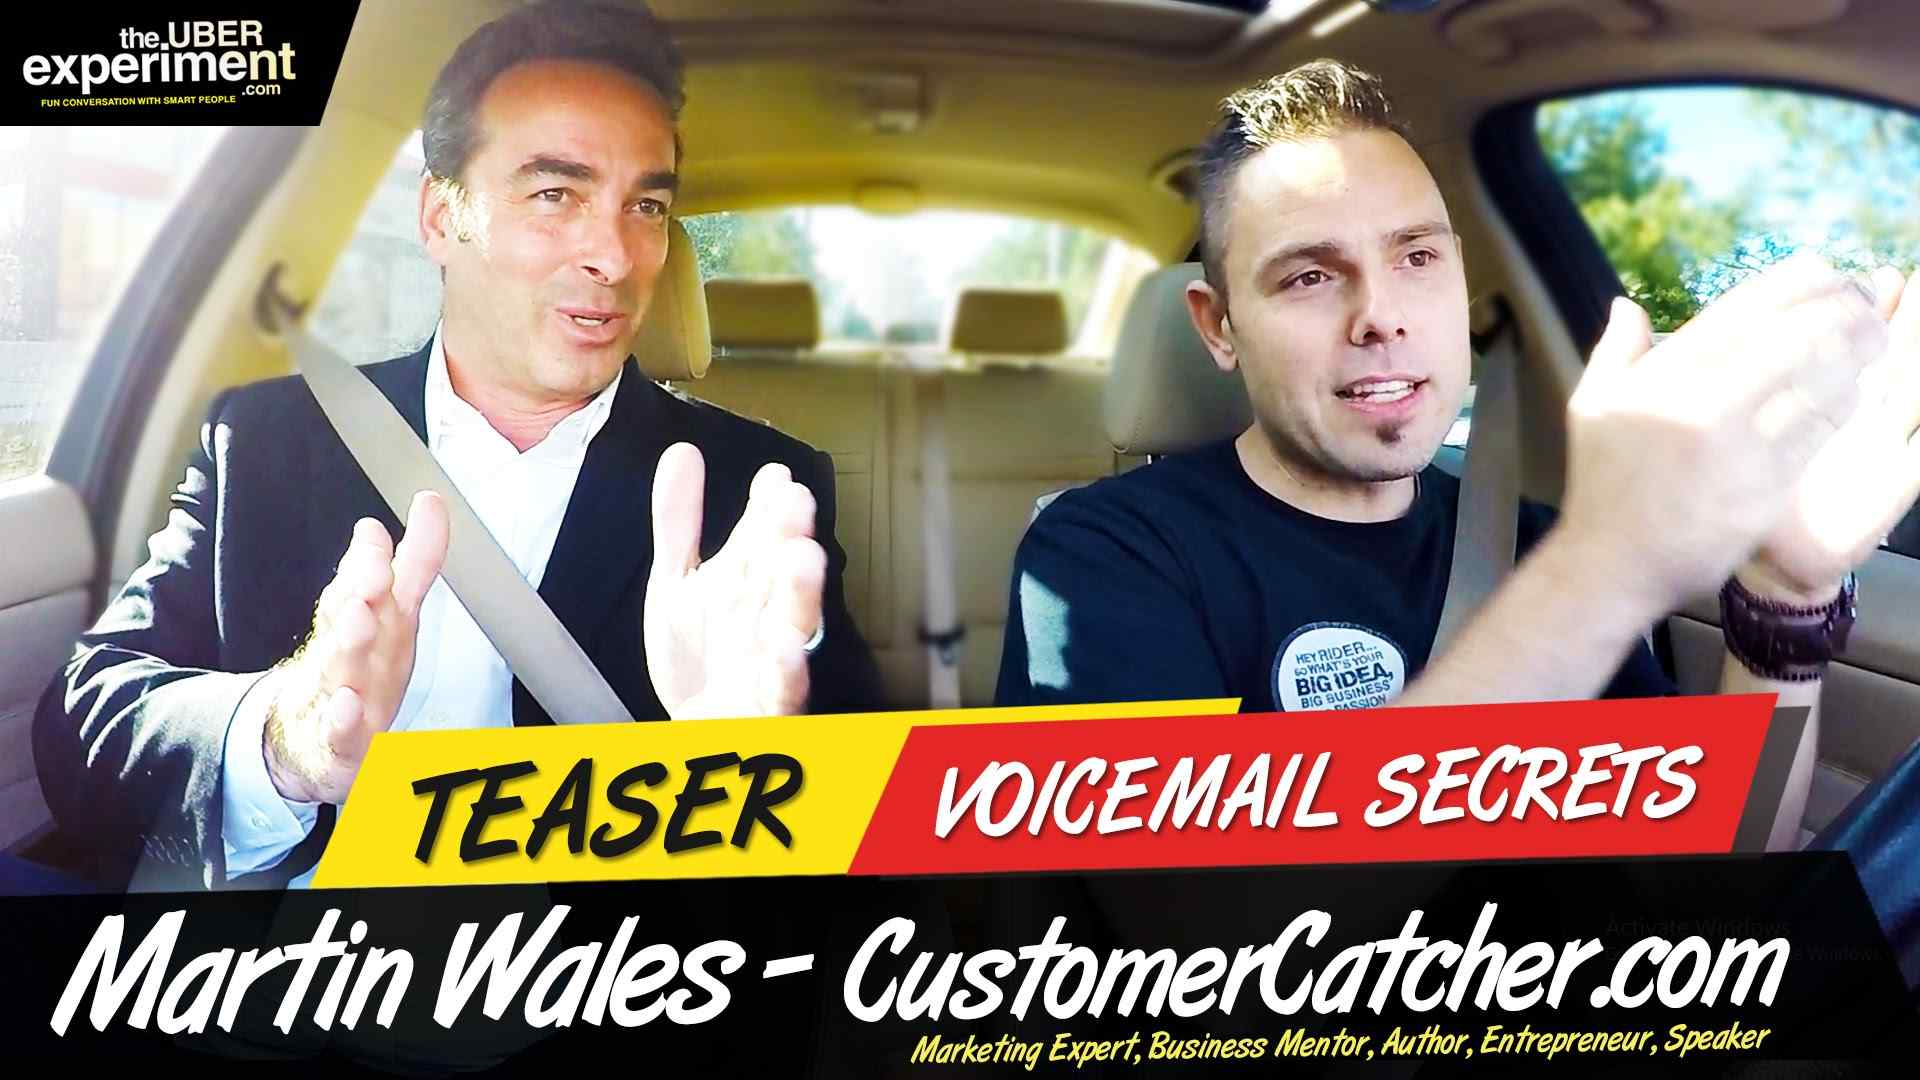 VOICEMAIL SECRETS - Bestselling Author & Speaker MARTIN WALES rides The UBER Experiment